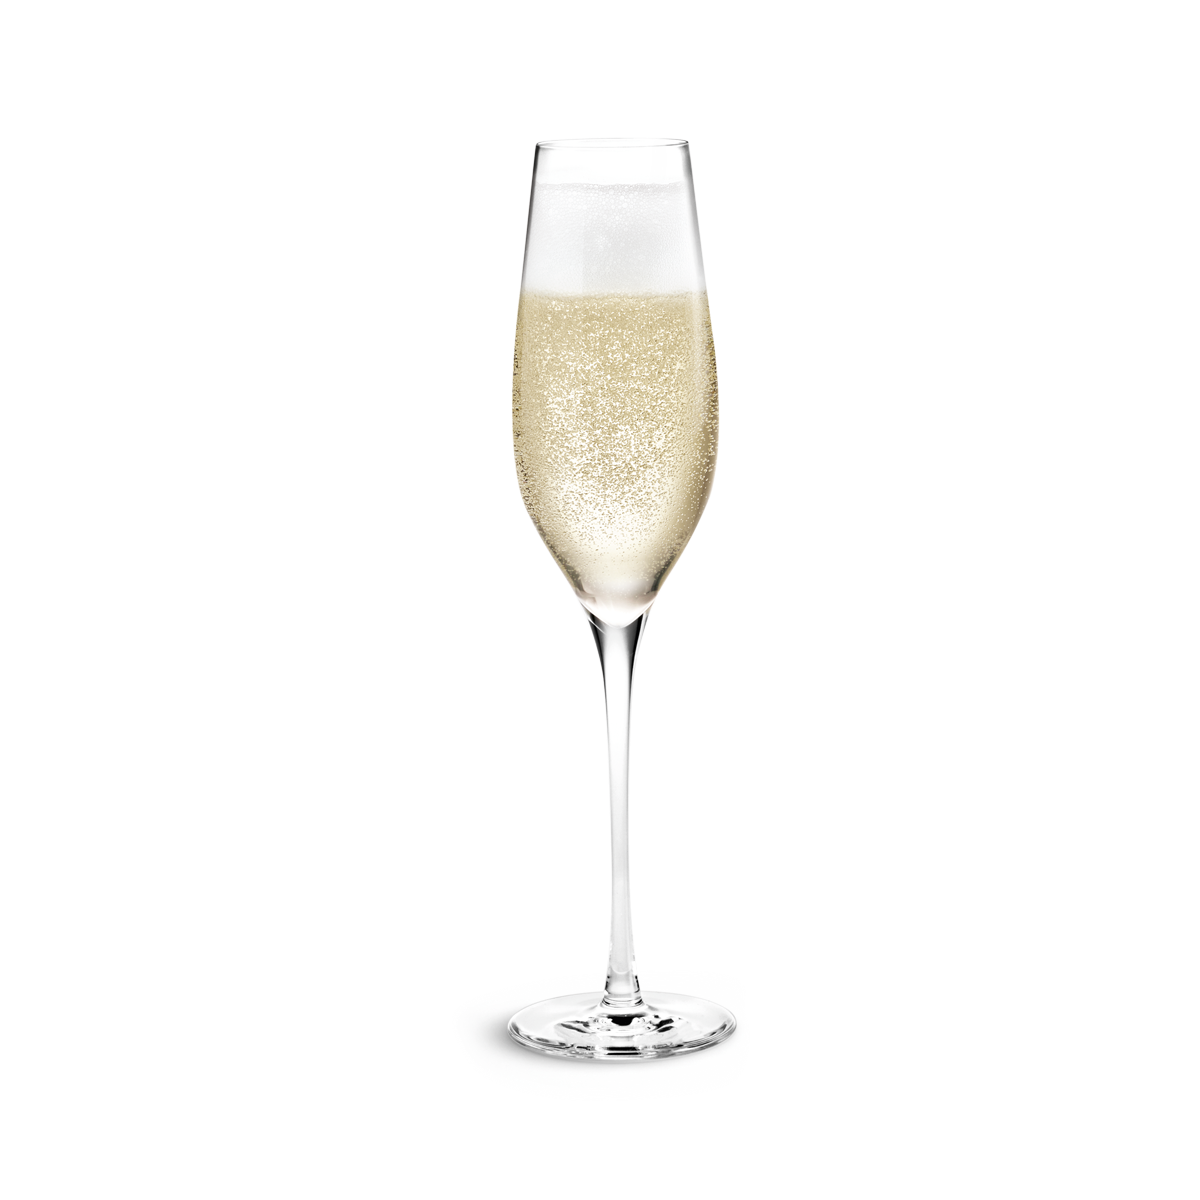 Champagne Glass PNG Free Download.